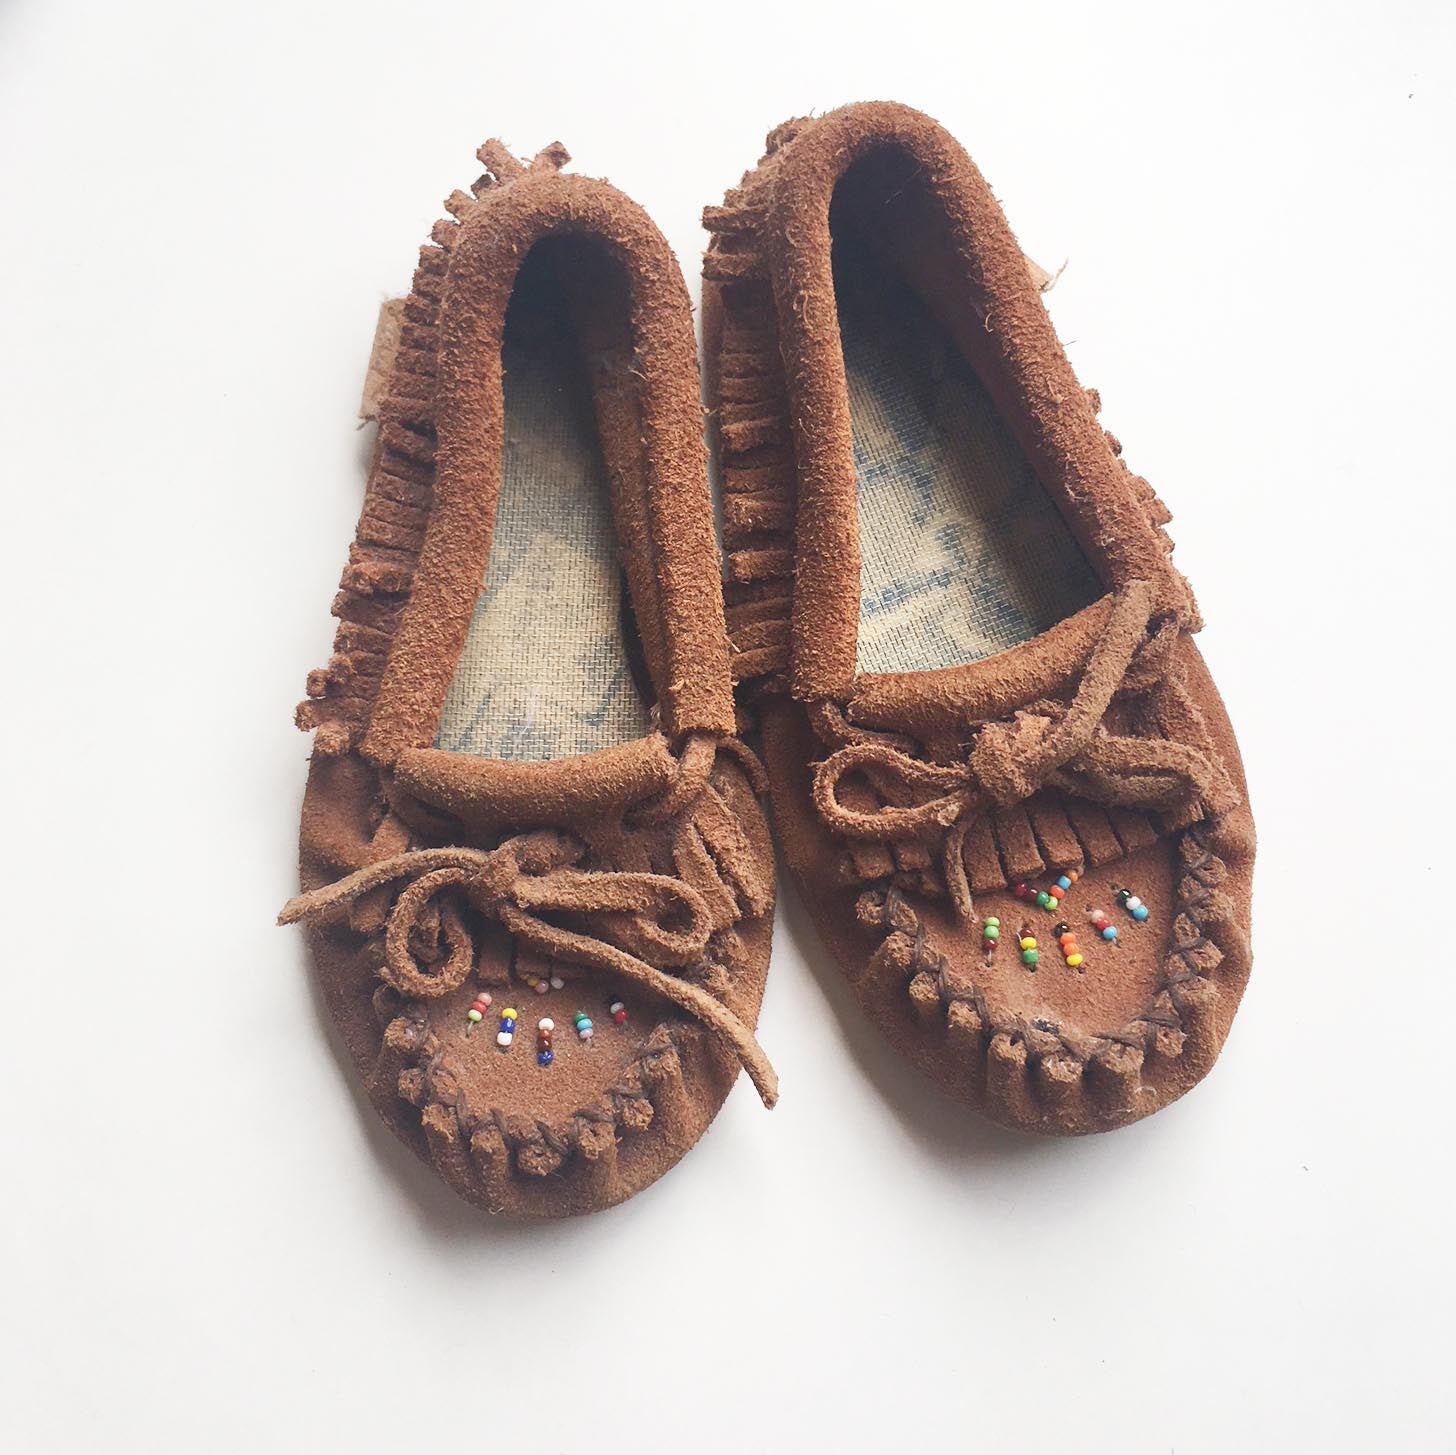 Beaded moccasin childrens size 7